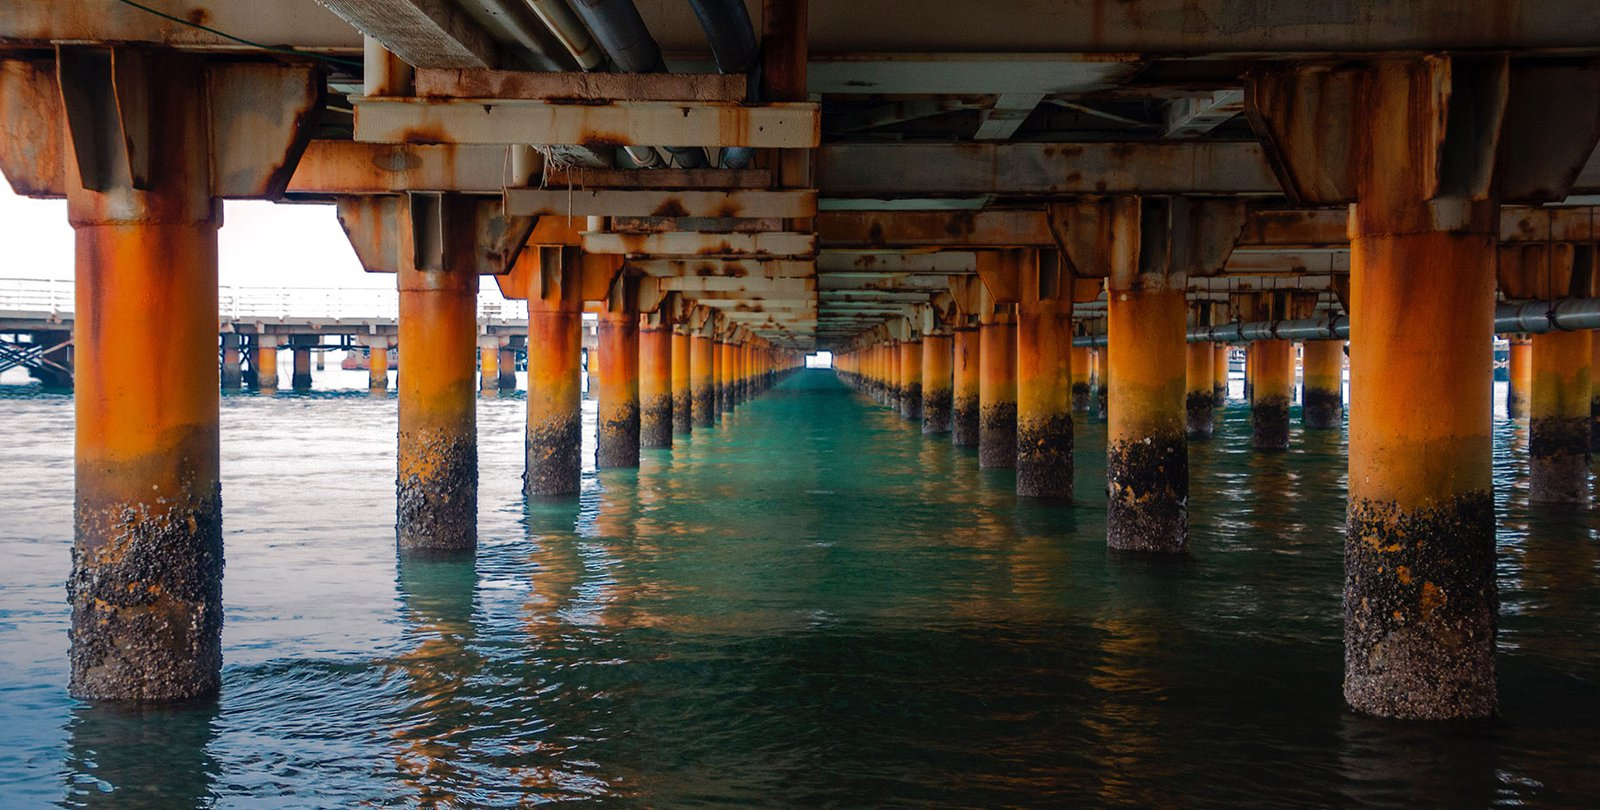 An image of the underside of a rusty bridge over a body of water.